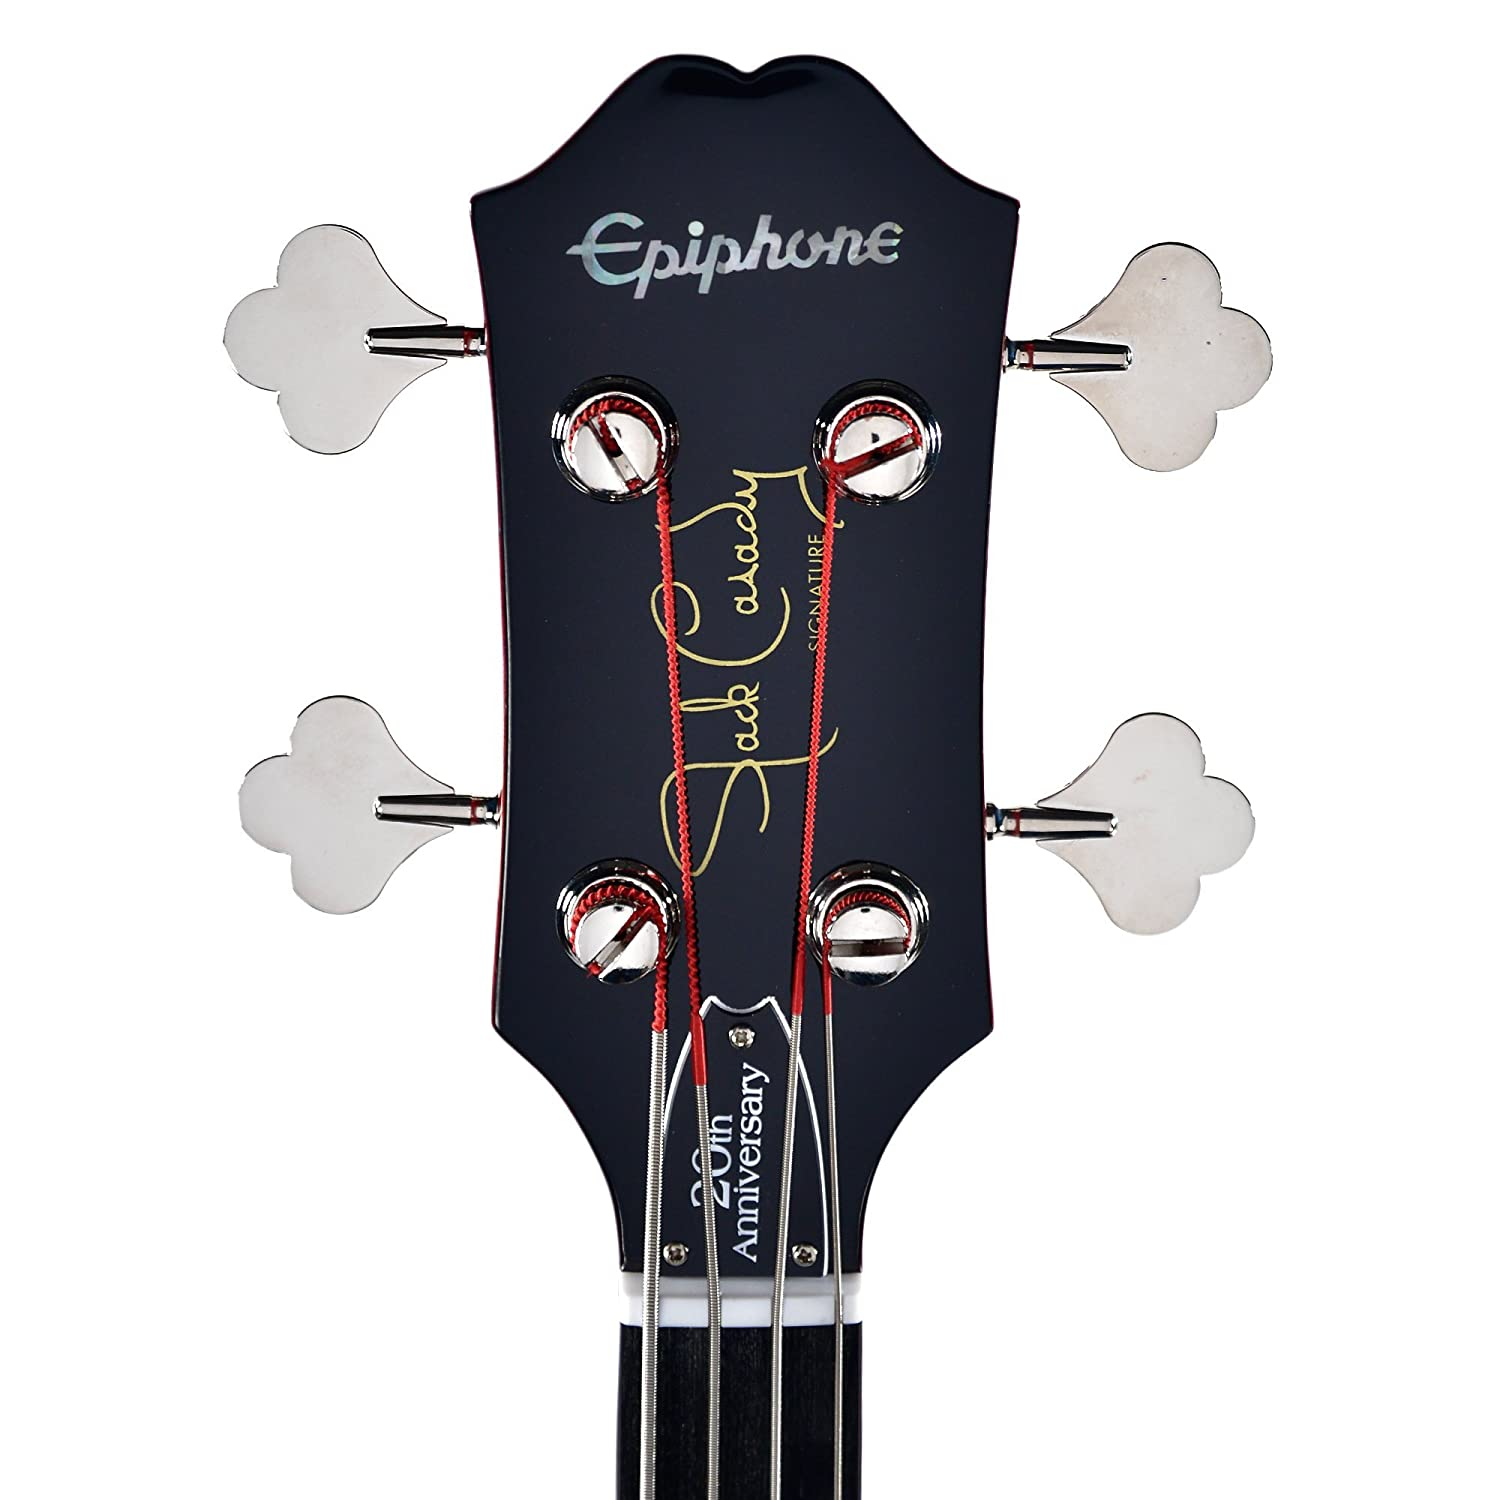 epiphone limited editions 20th anniversary jack casady